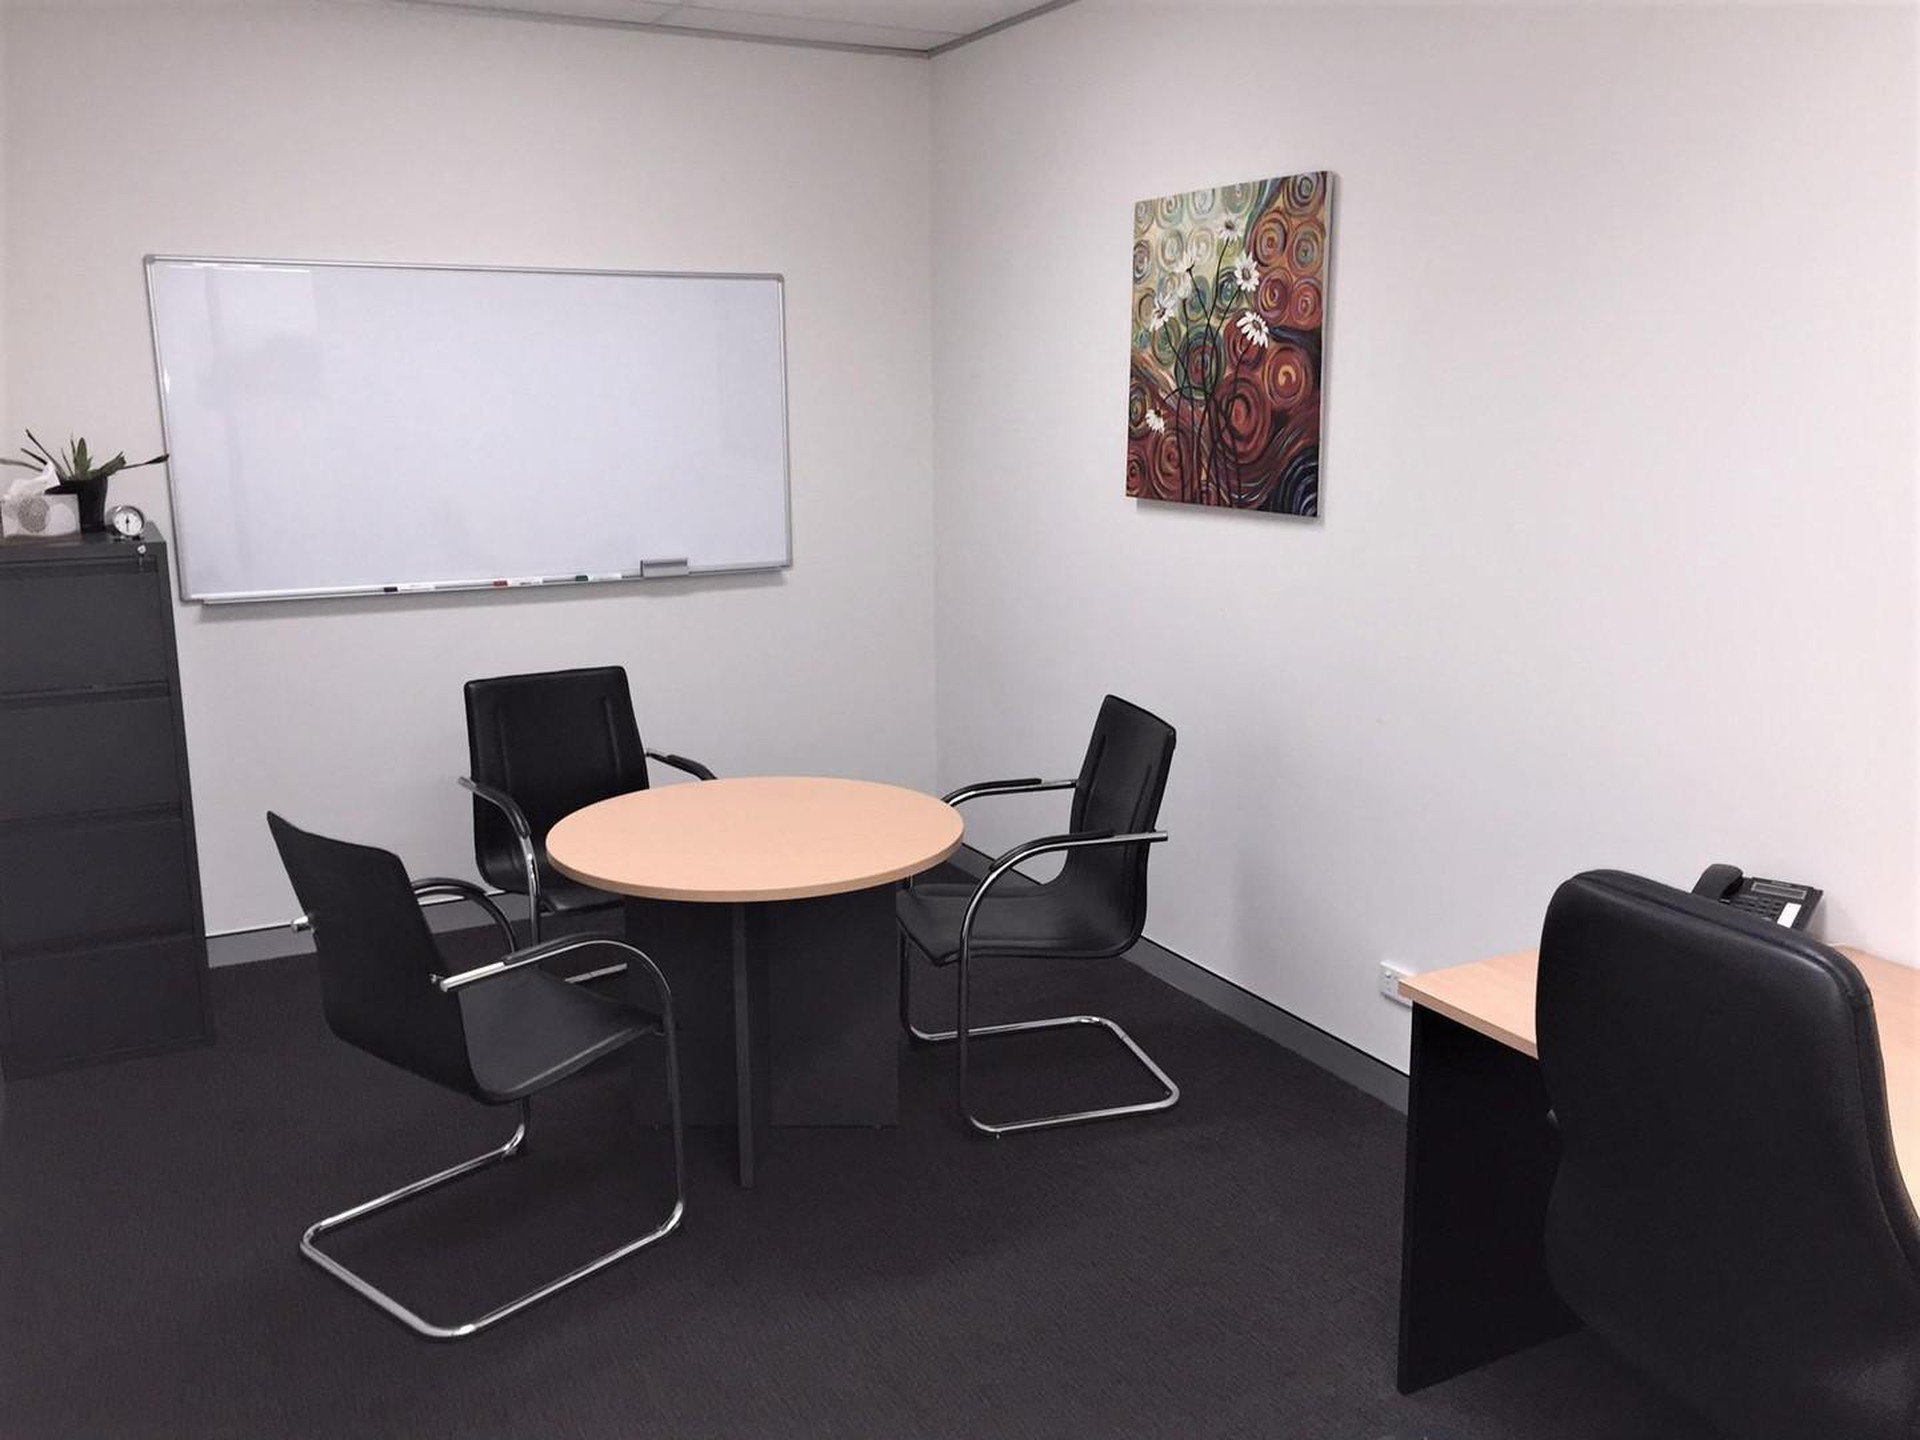 Brisbane conference rooms Salle de réunion Ashgrove Serviced Offices - Boardroom image 0